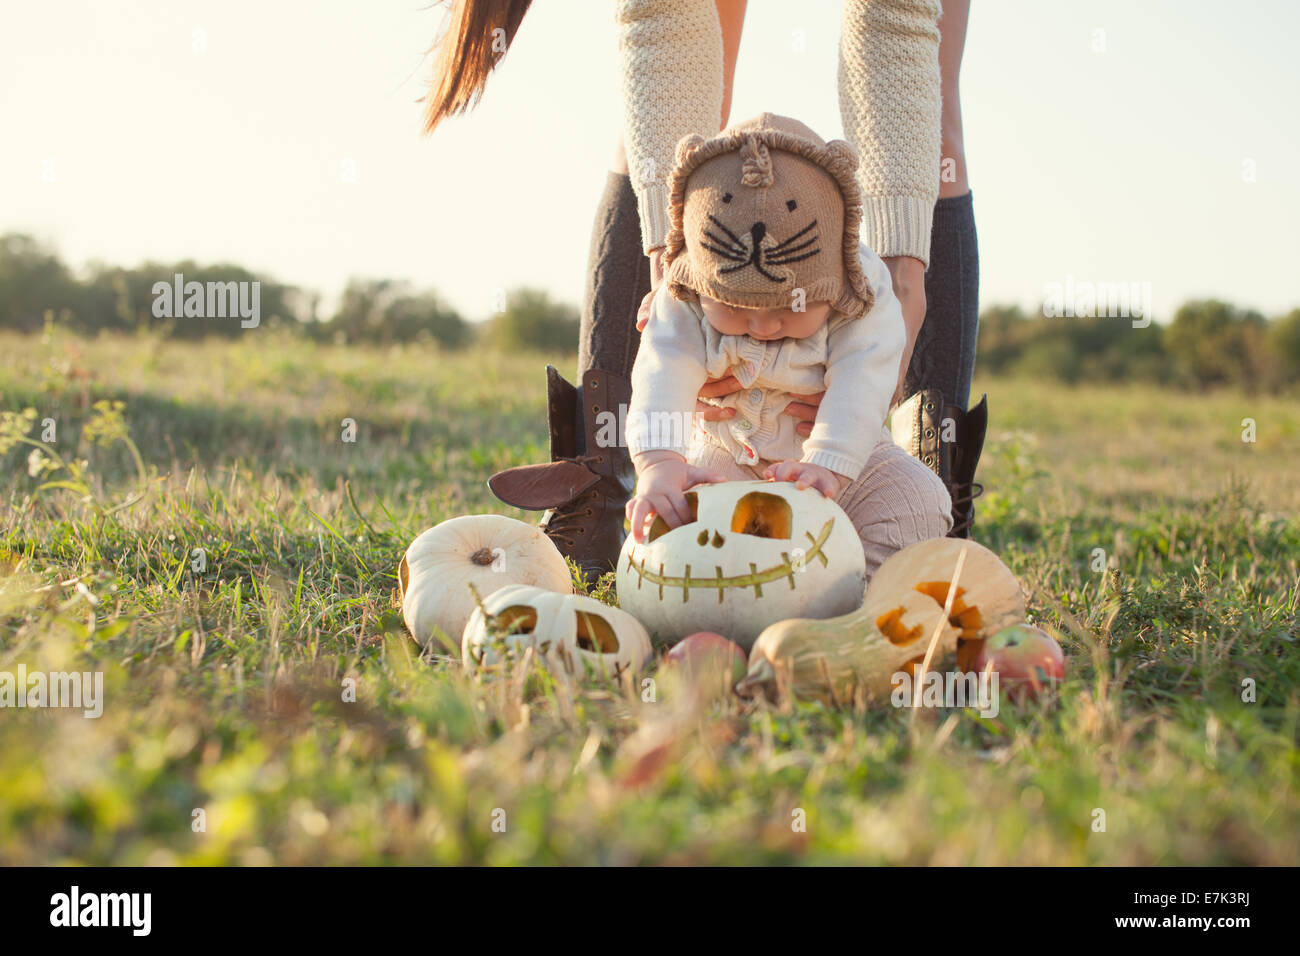 Little baby seeing halloween pumpkin first time - Stock Image